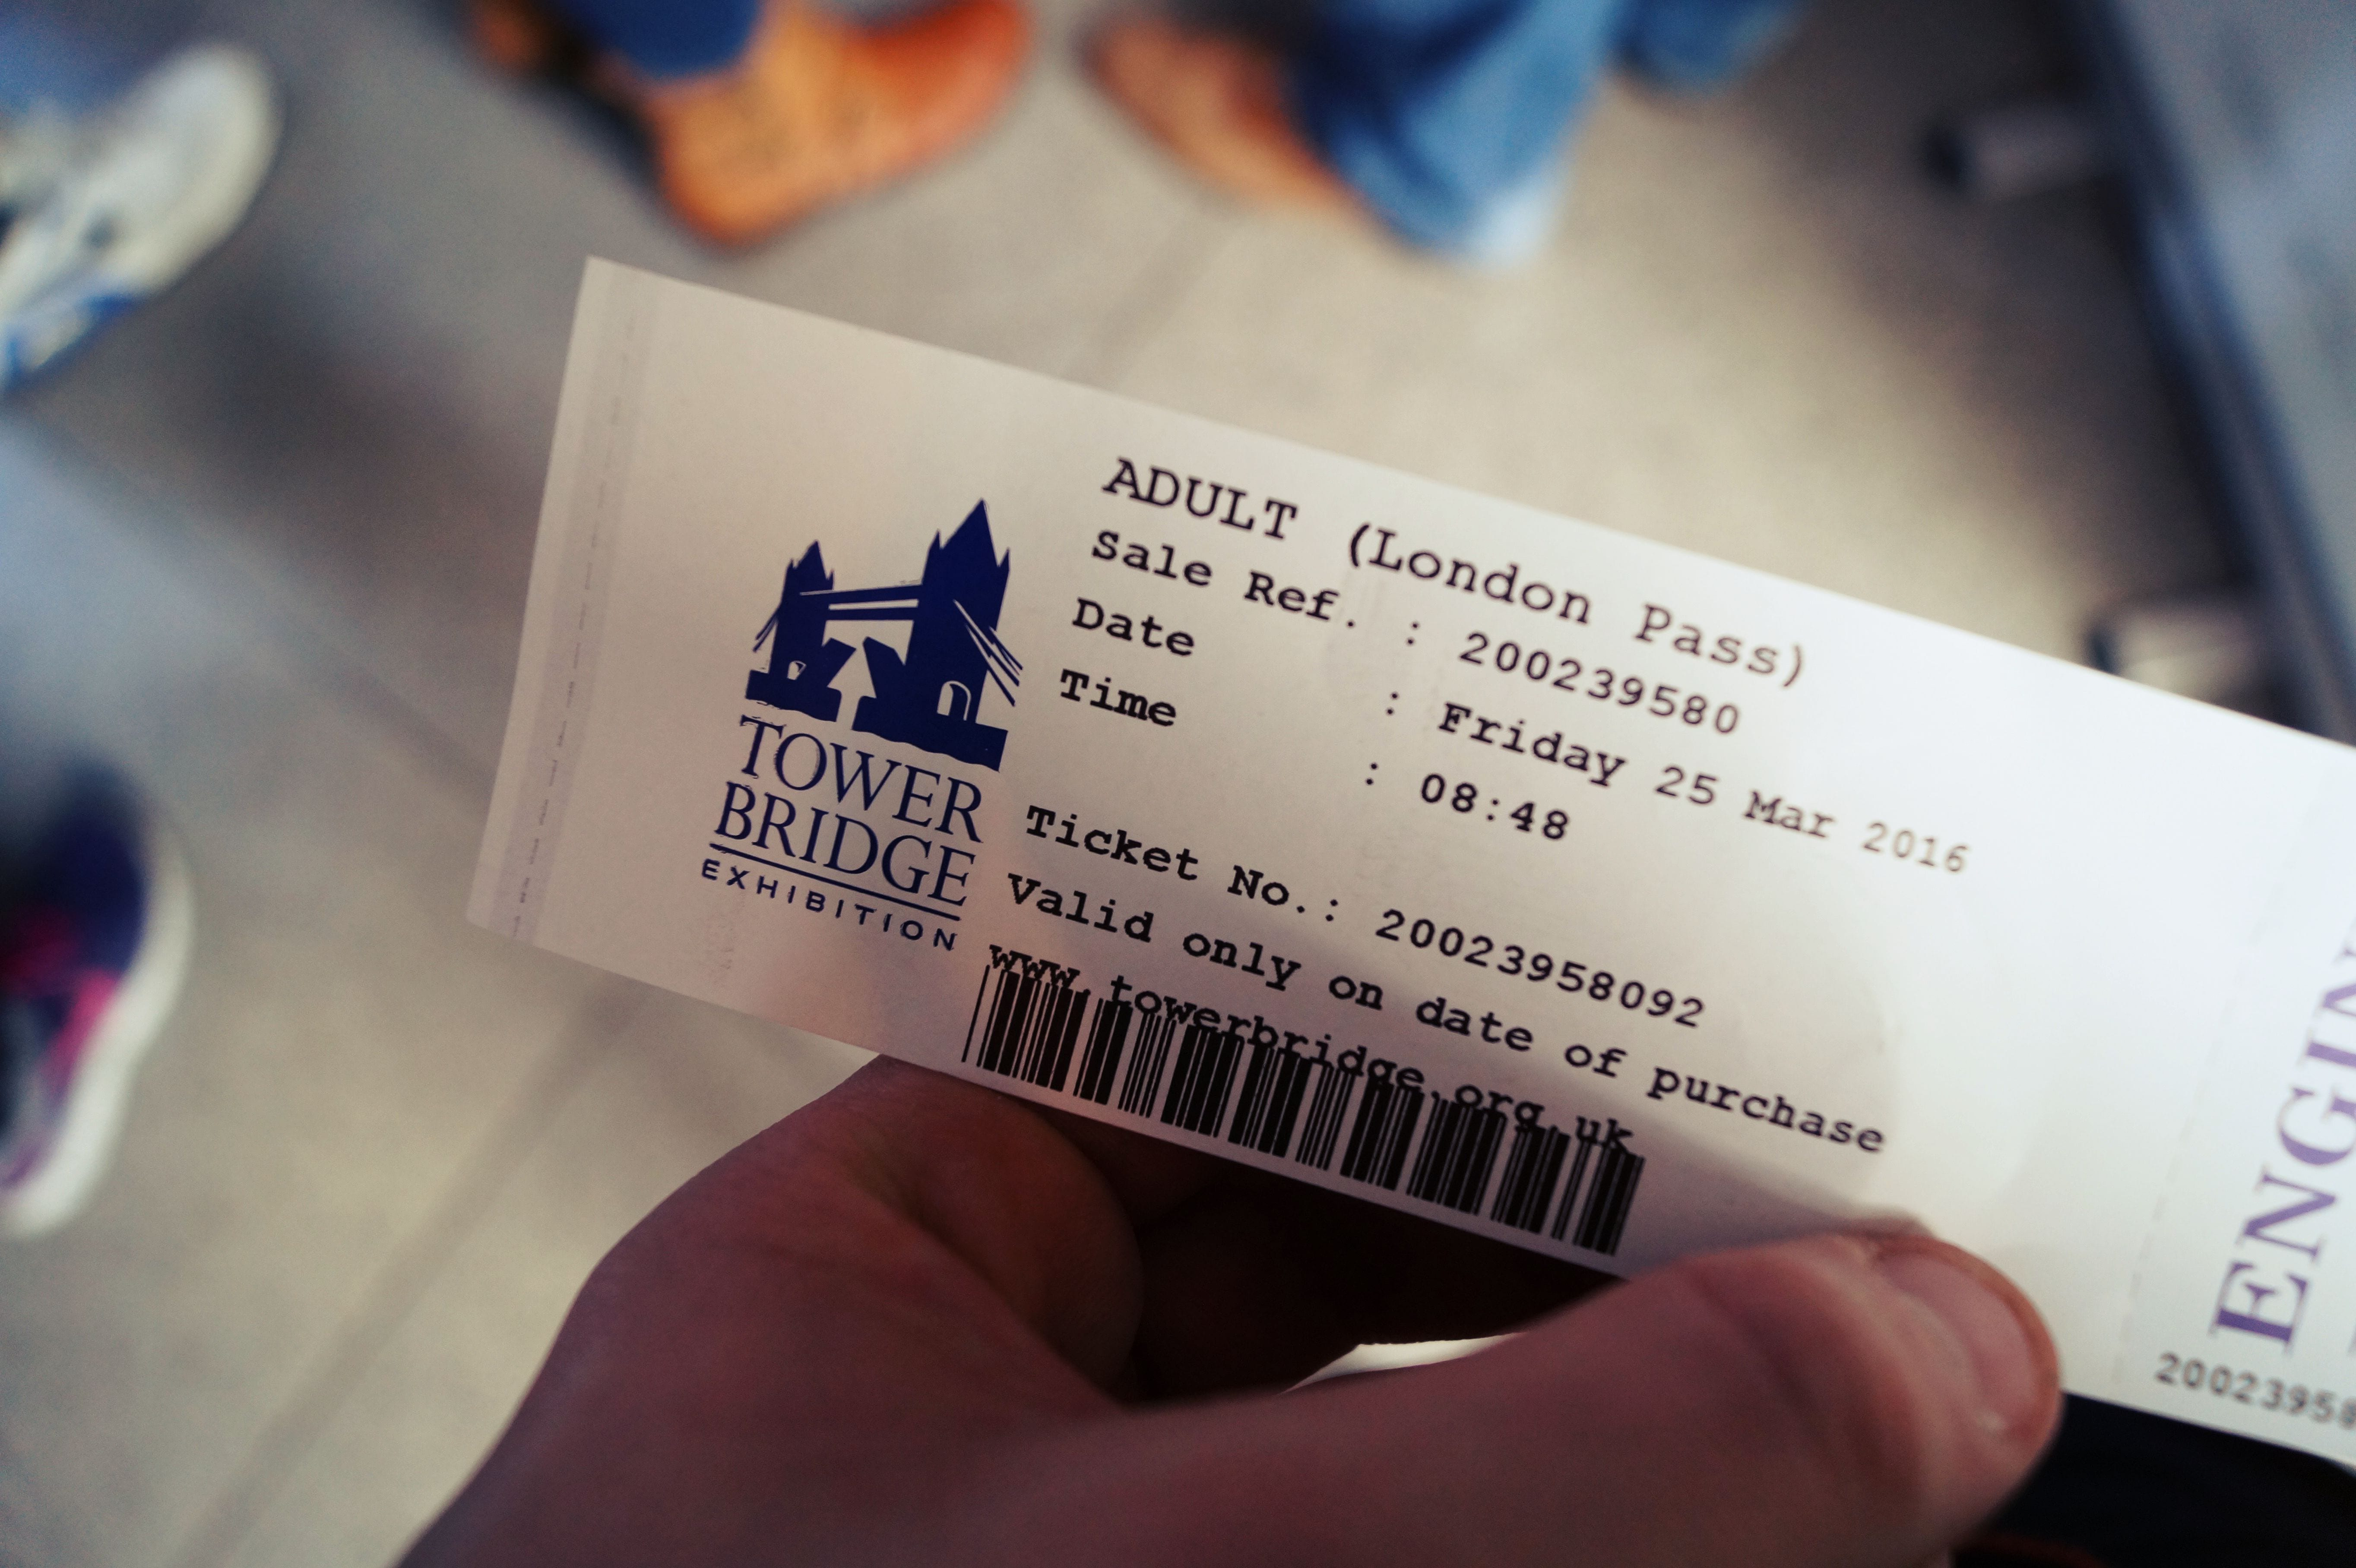 tower-bridge-exhebition-ticket